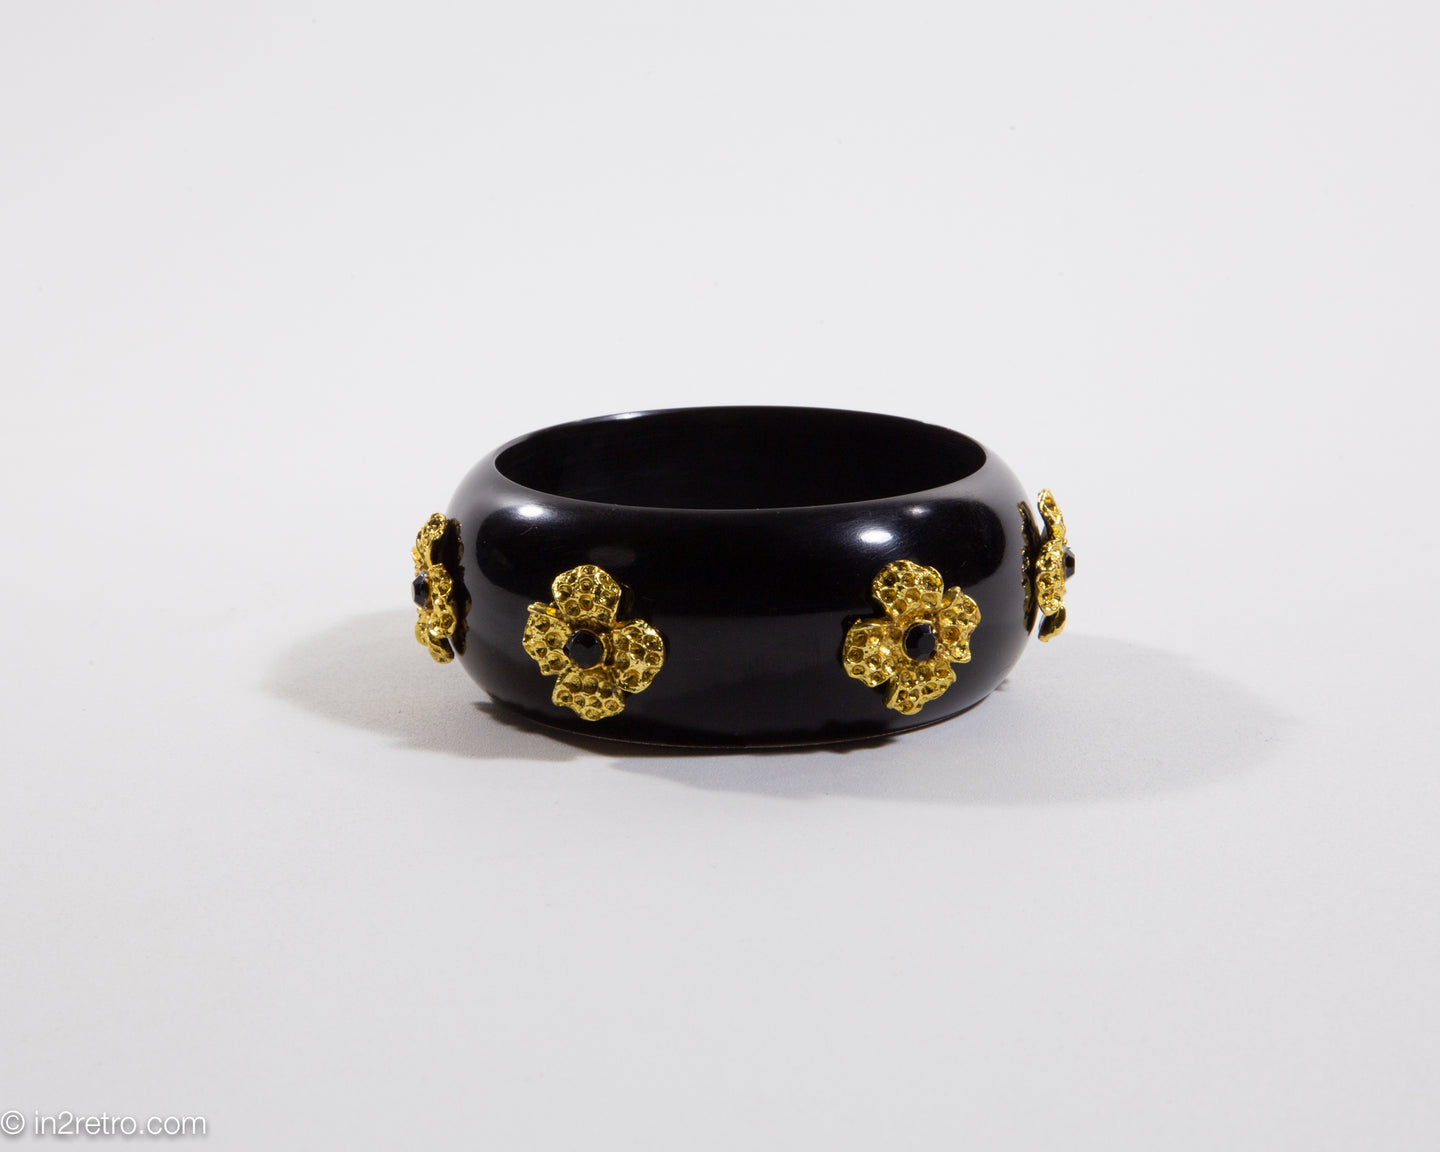 VINTAGE BLACK RESIN GOLD FLOWER BANGLE BRACELET